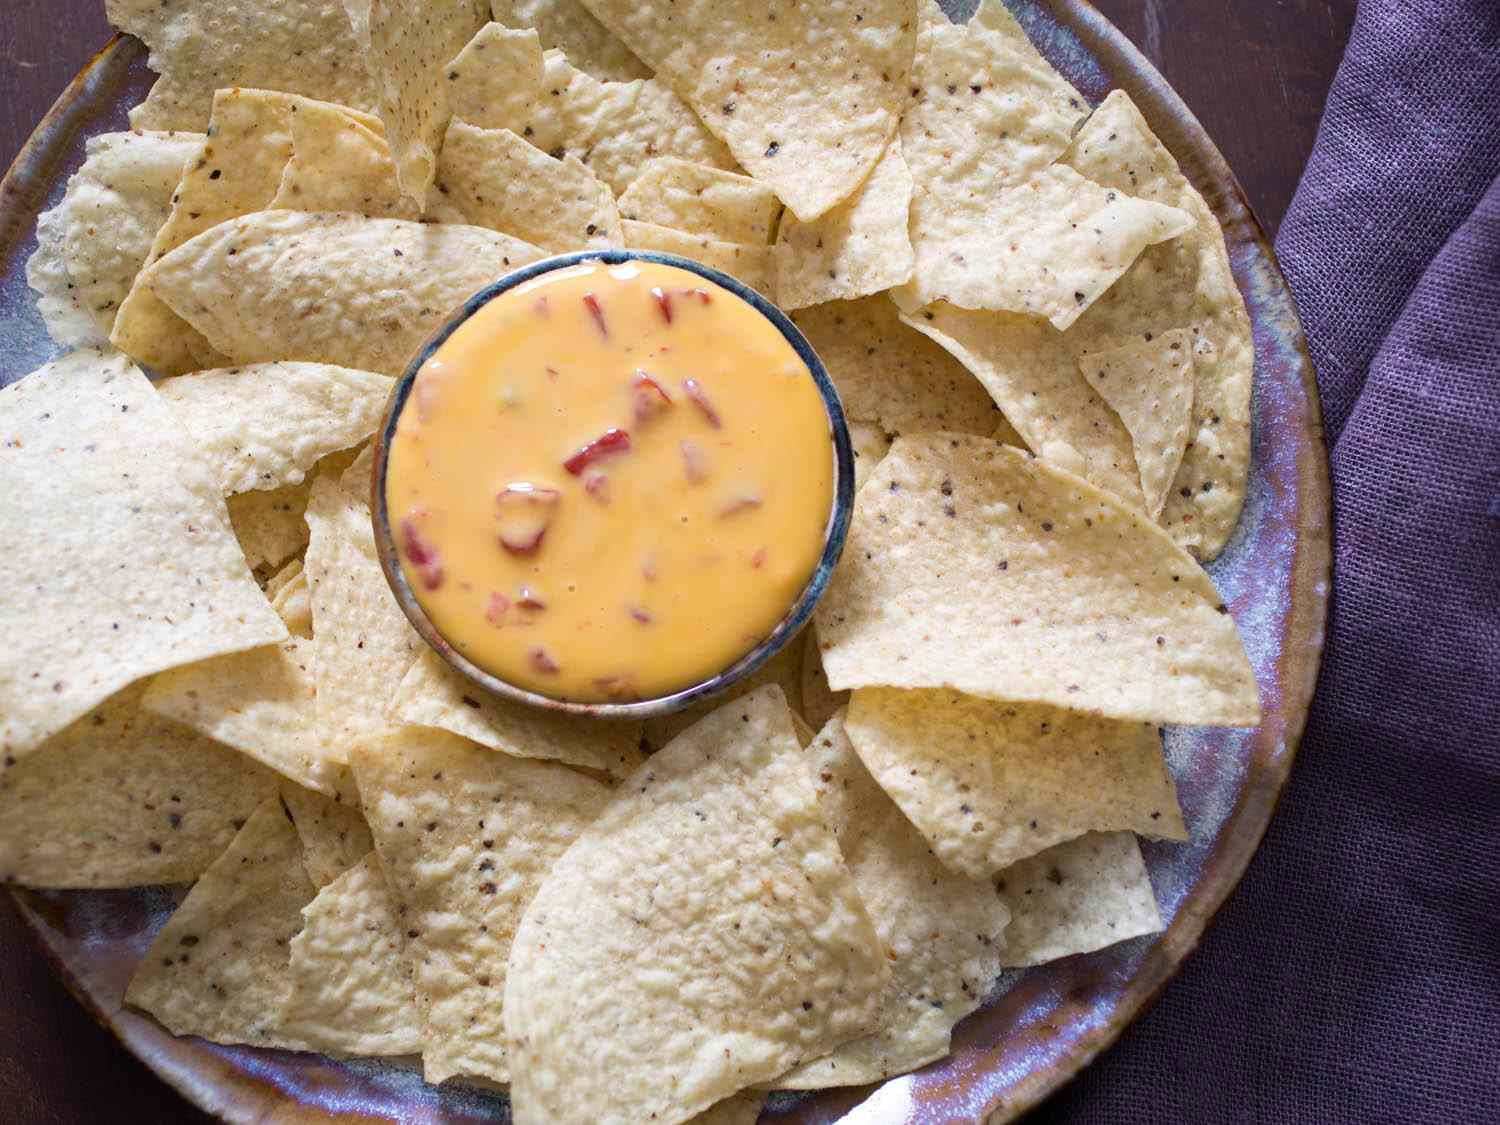 20150204-queso-vicky-wasik-2.jpg